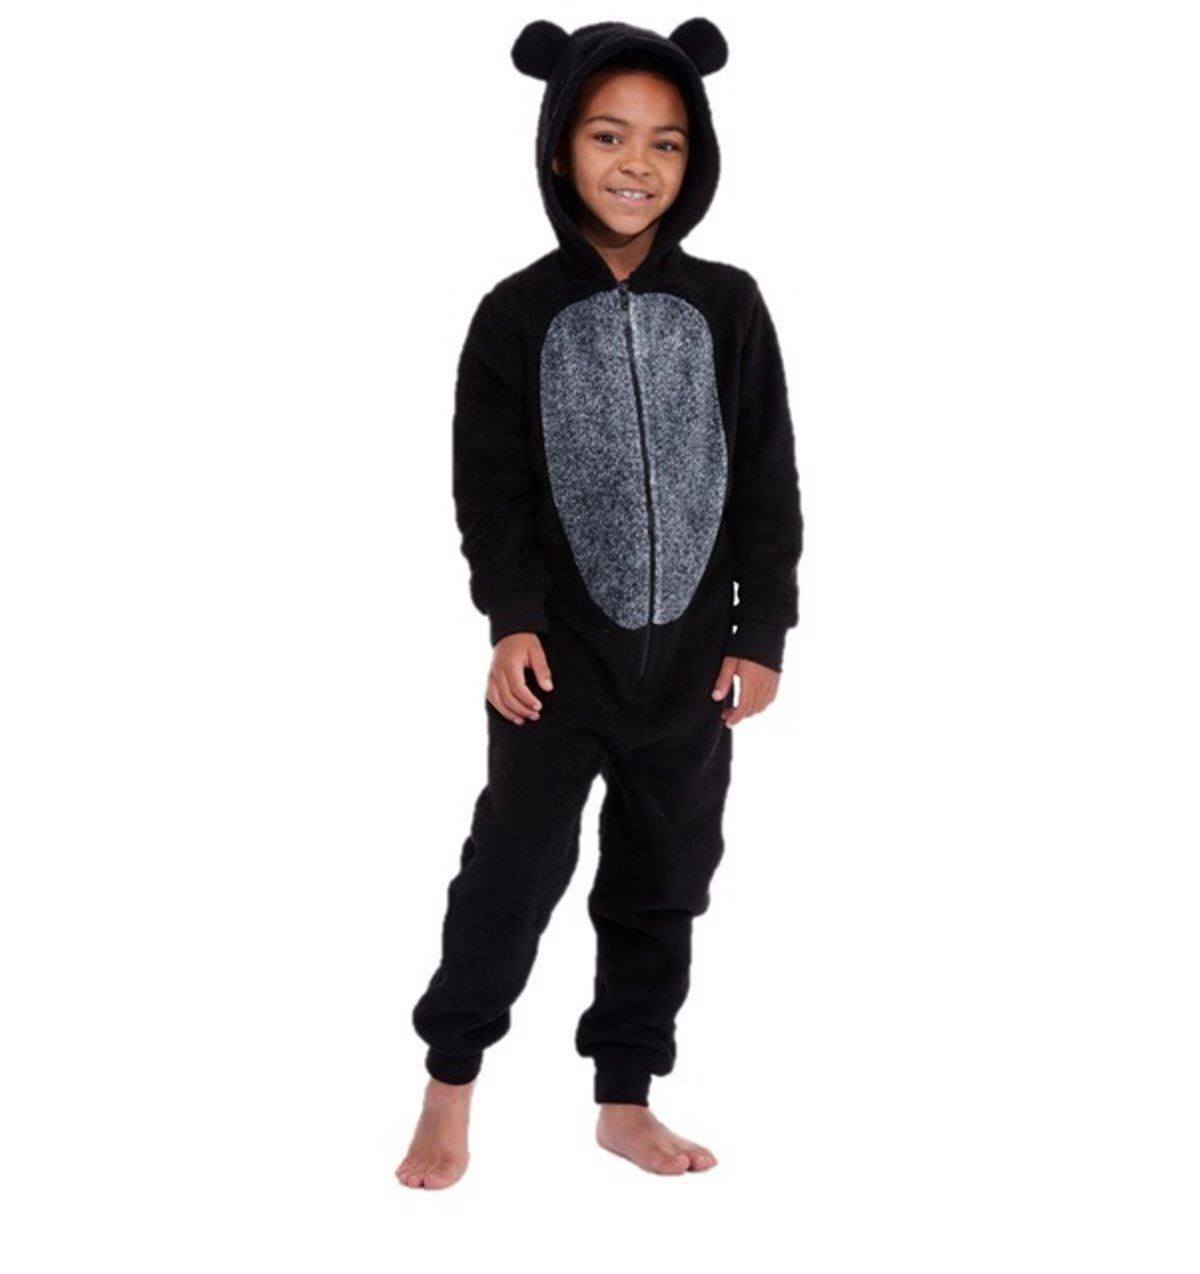 Hugely successful the company is now making onesies for people of all ages and sizes all over the world. click here to order now faqs Our aim is to bring warmth, fun and happiness into your life in .